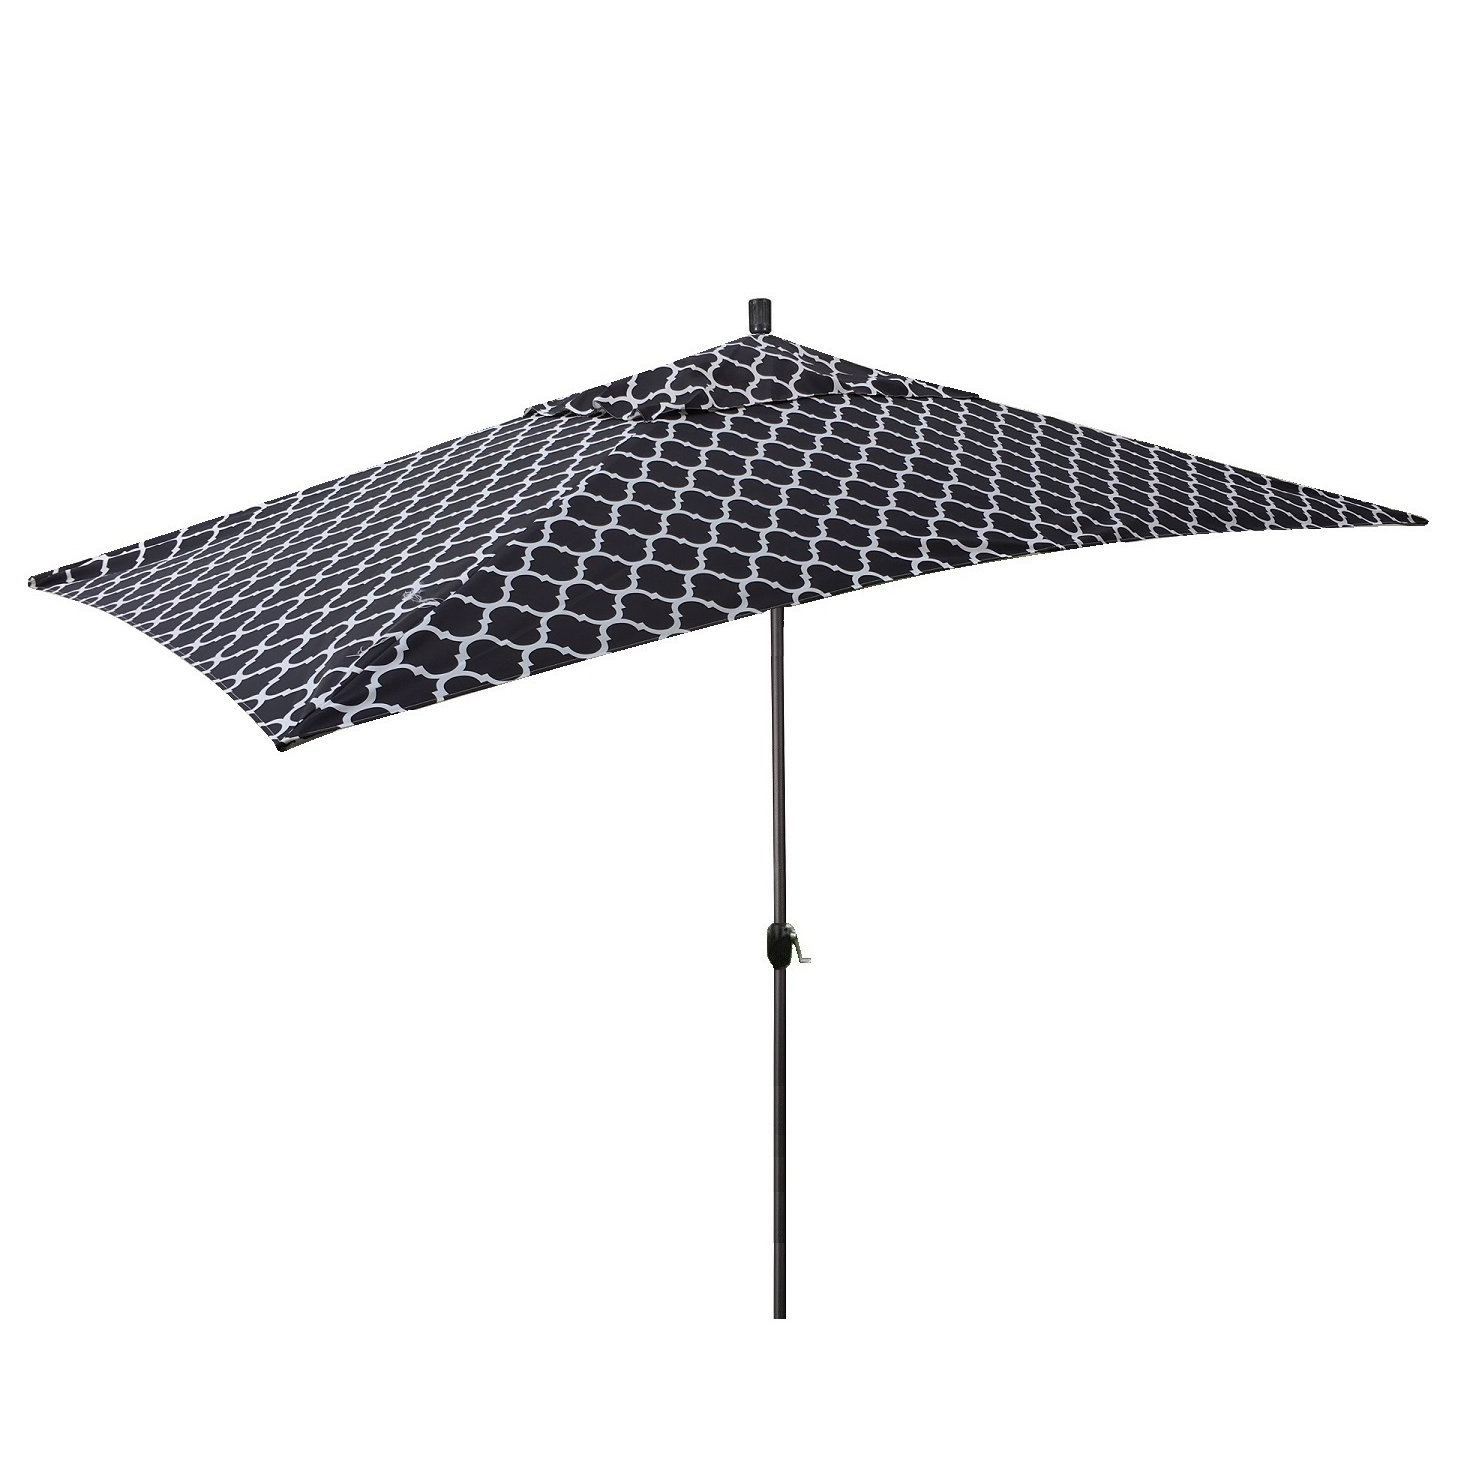 Sherlyn 10' X 6' Rectangular Market Umbrella Regarding Famous Northfleet Rectangular Market Umbrellas (View 15 of 20)